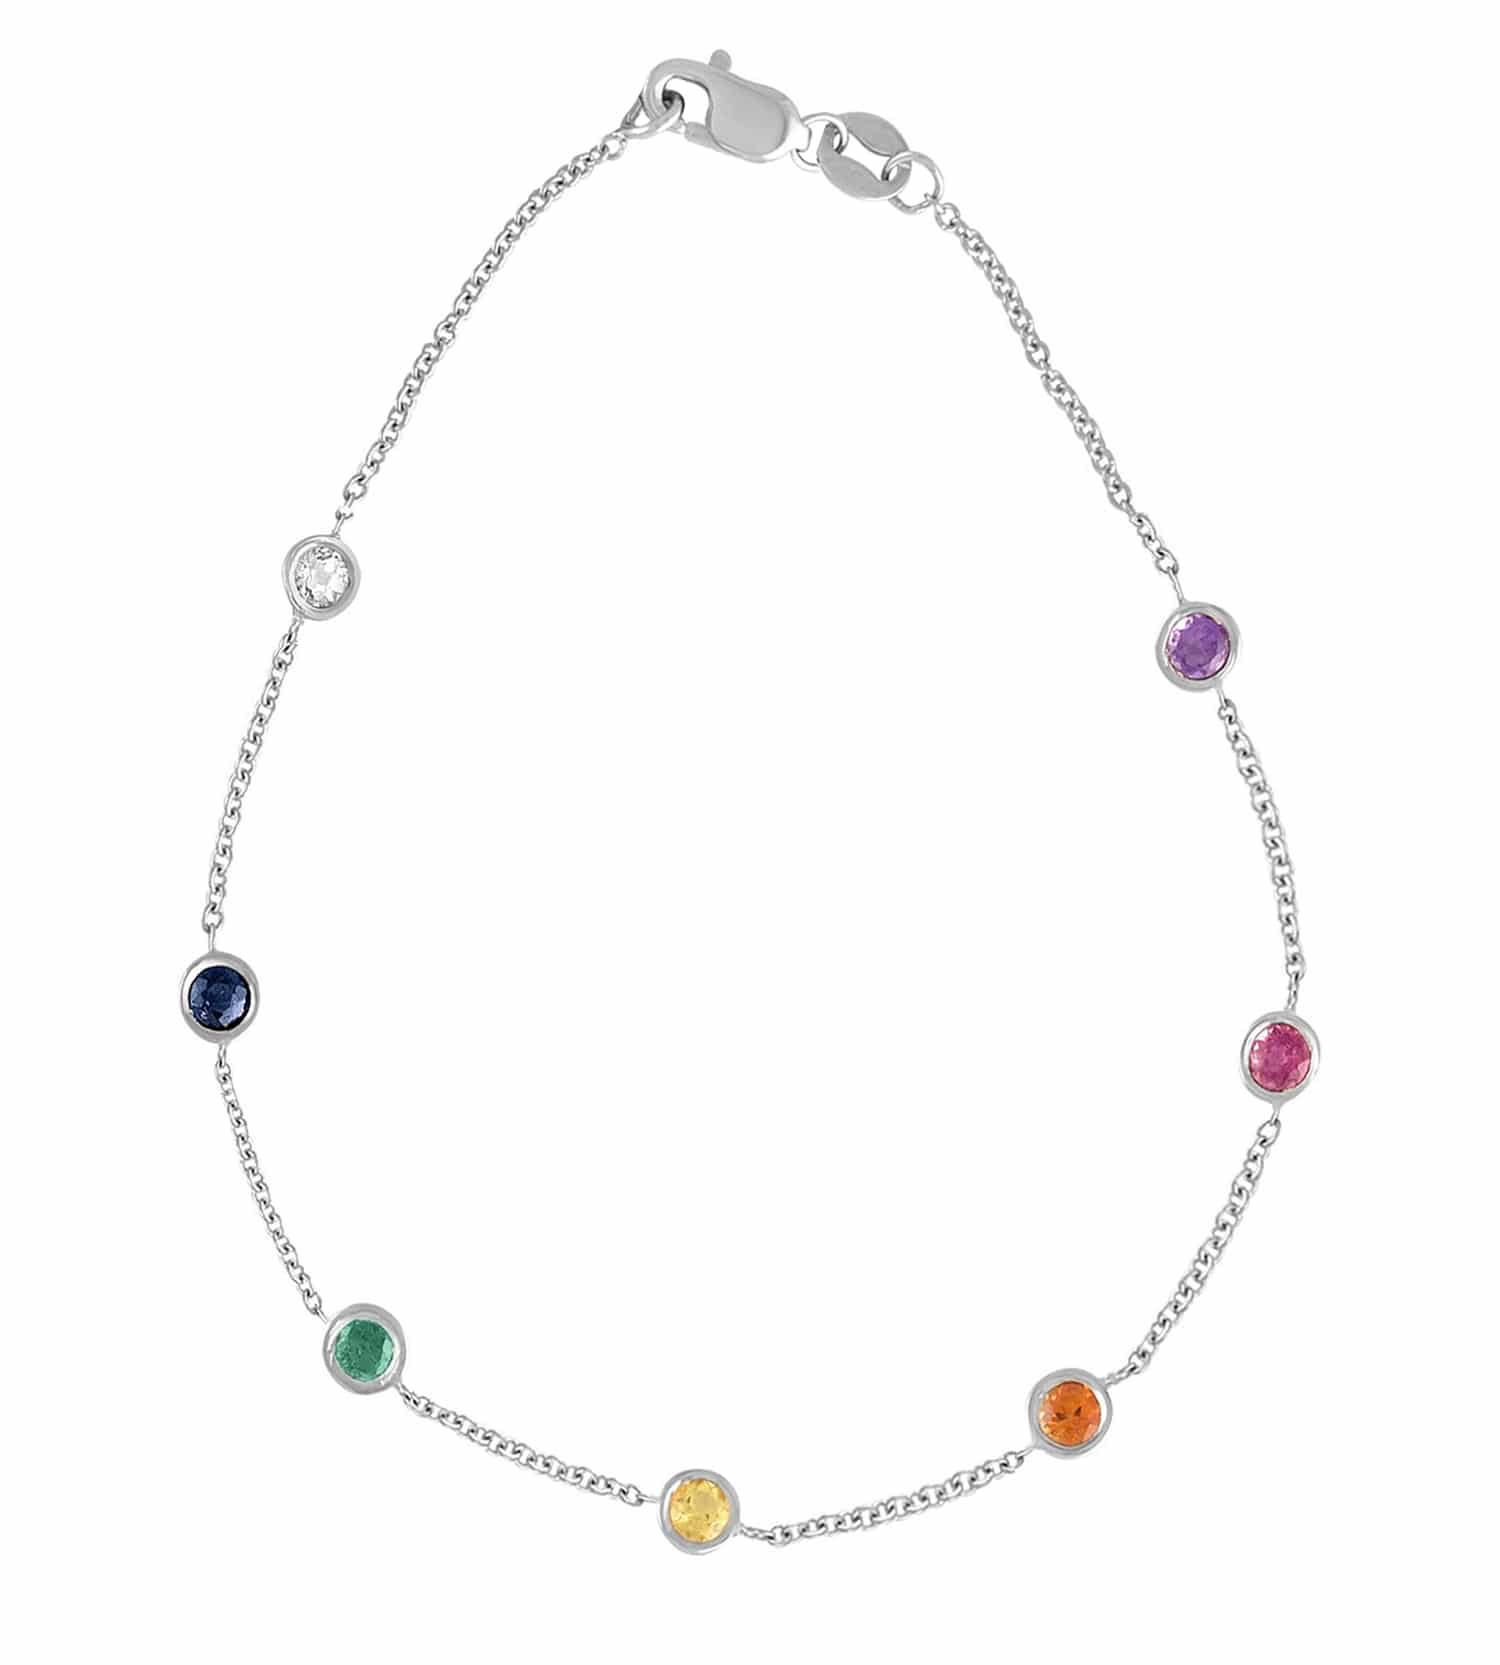 14 Karat Gold Rainbow Gemstone By The Yard Necklace